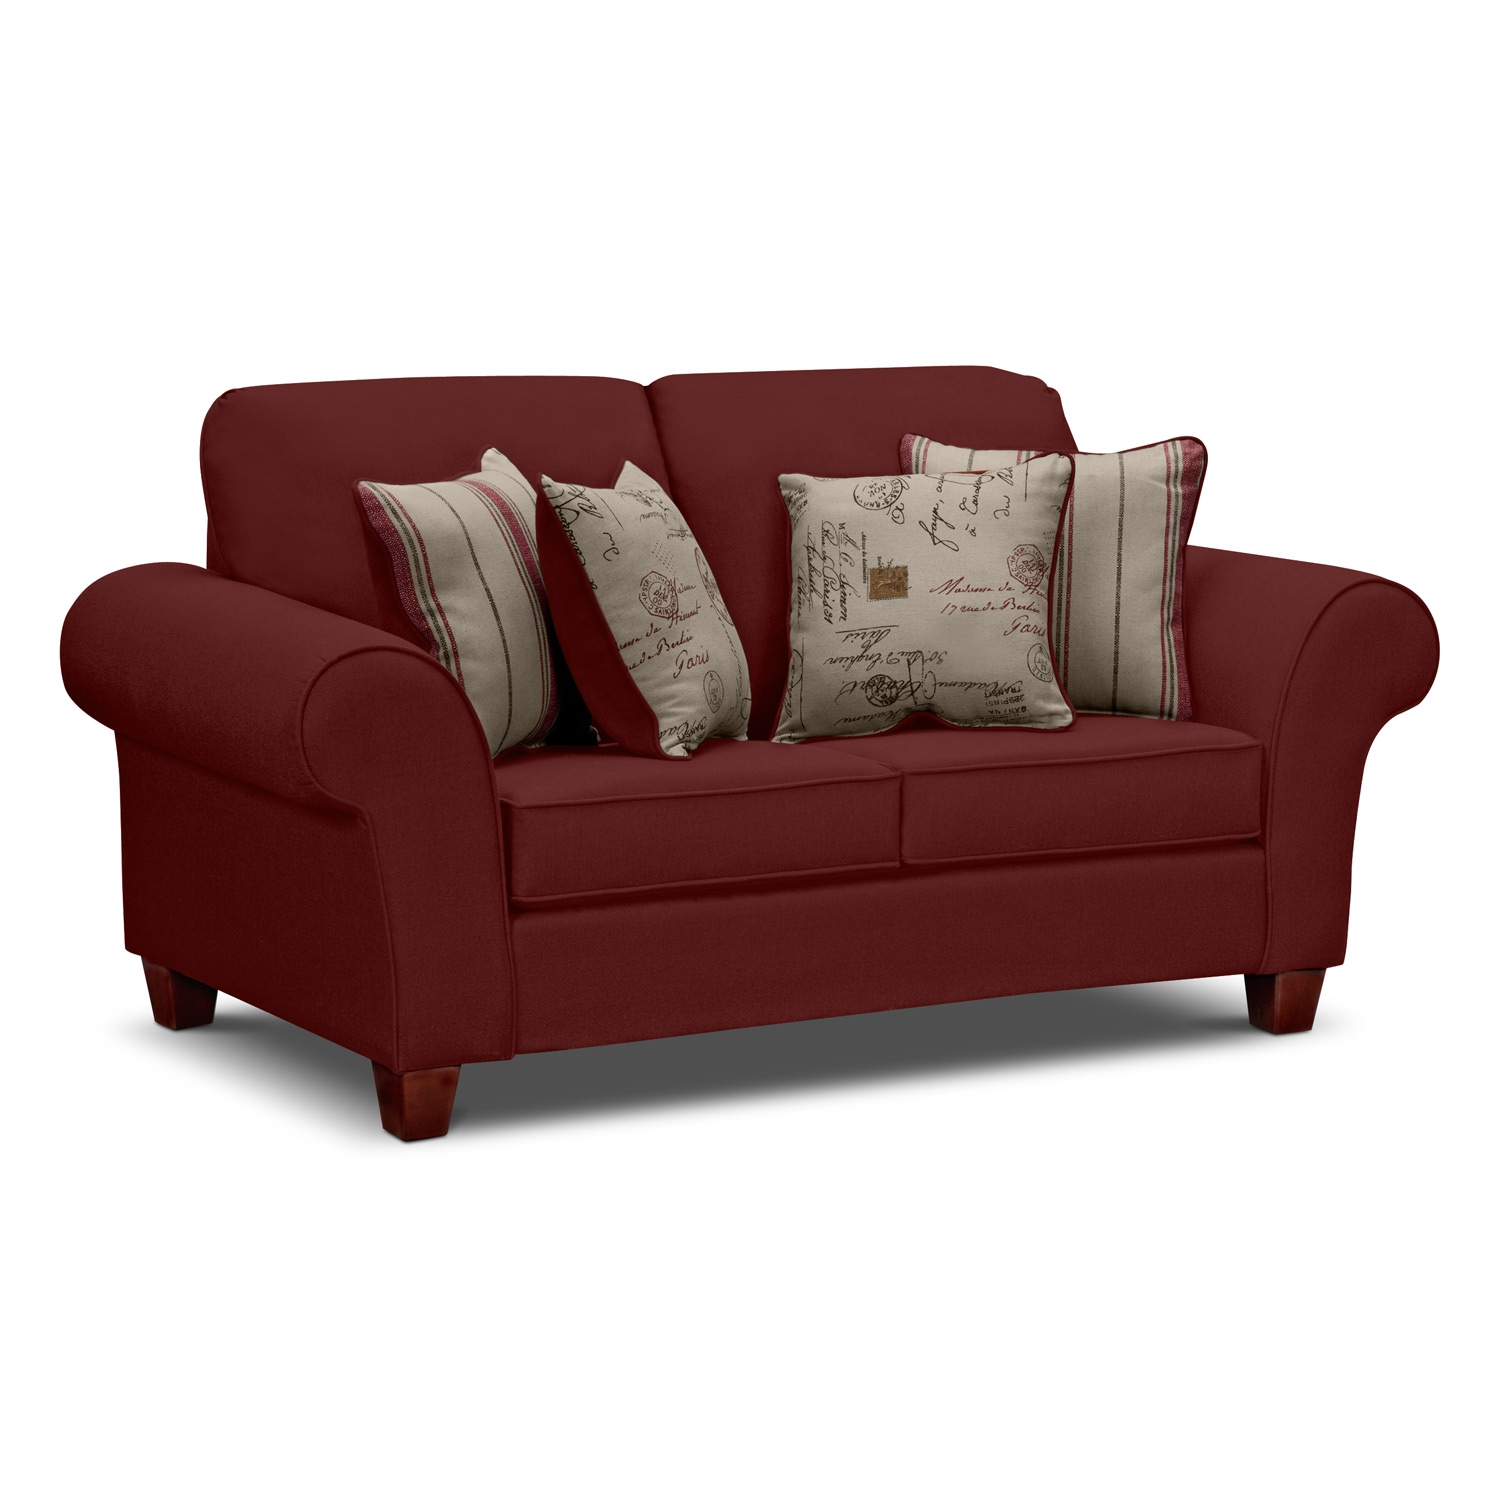 Image of: Type Twin Sleeper Sofa Chair